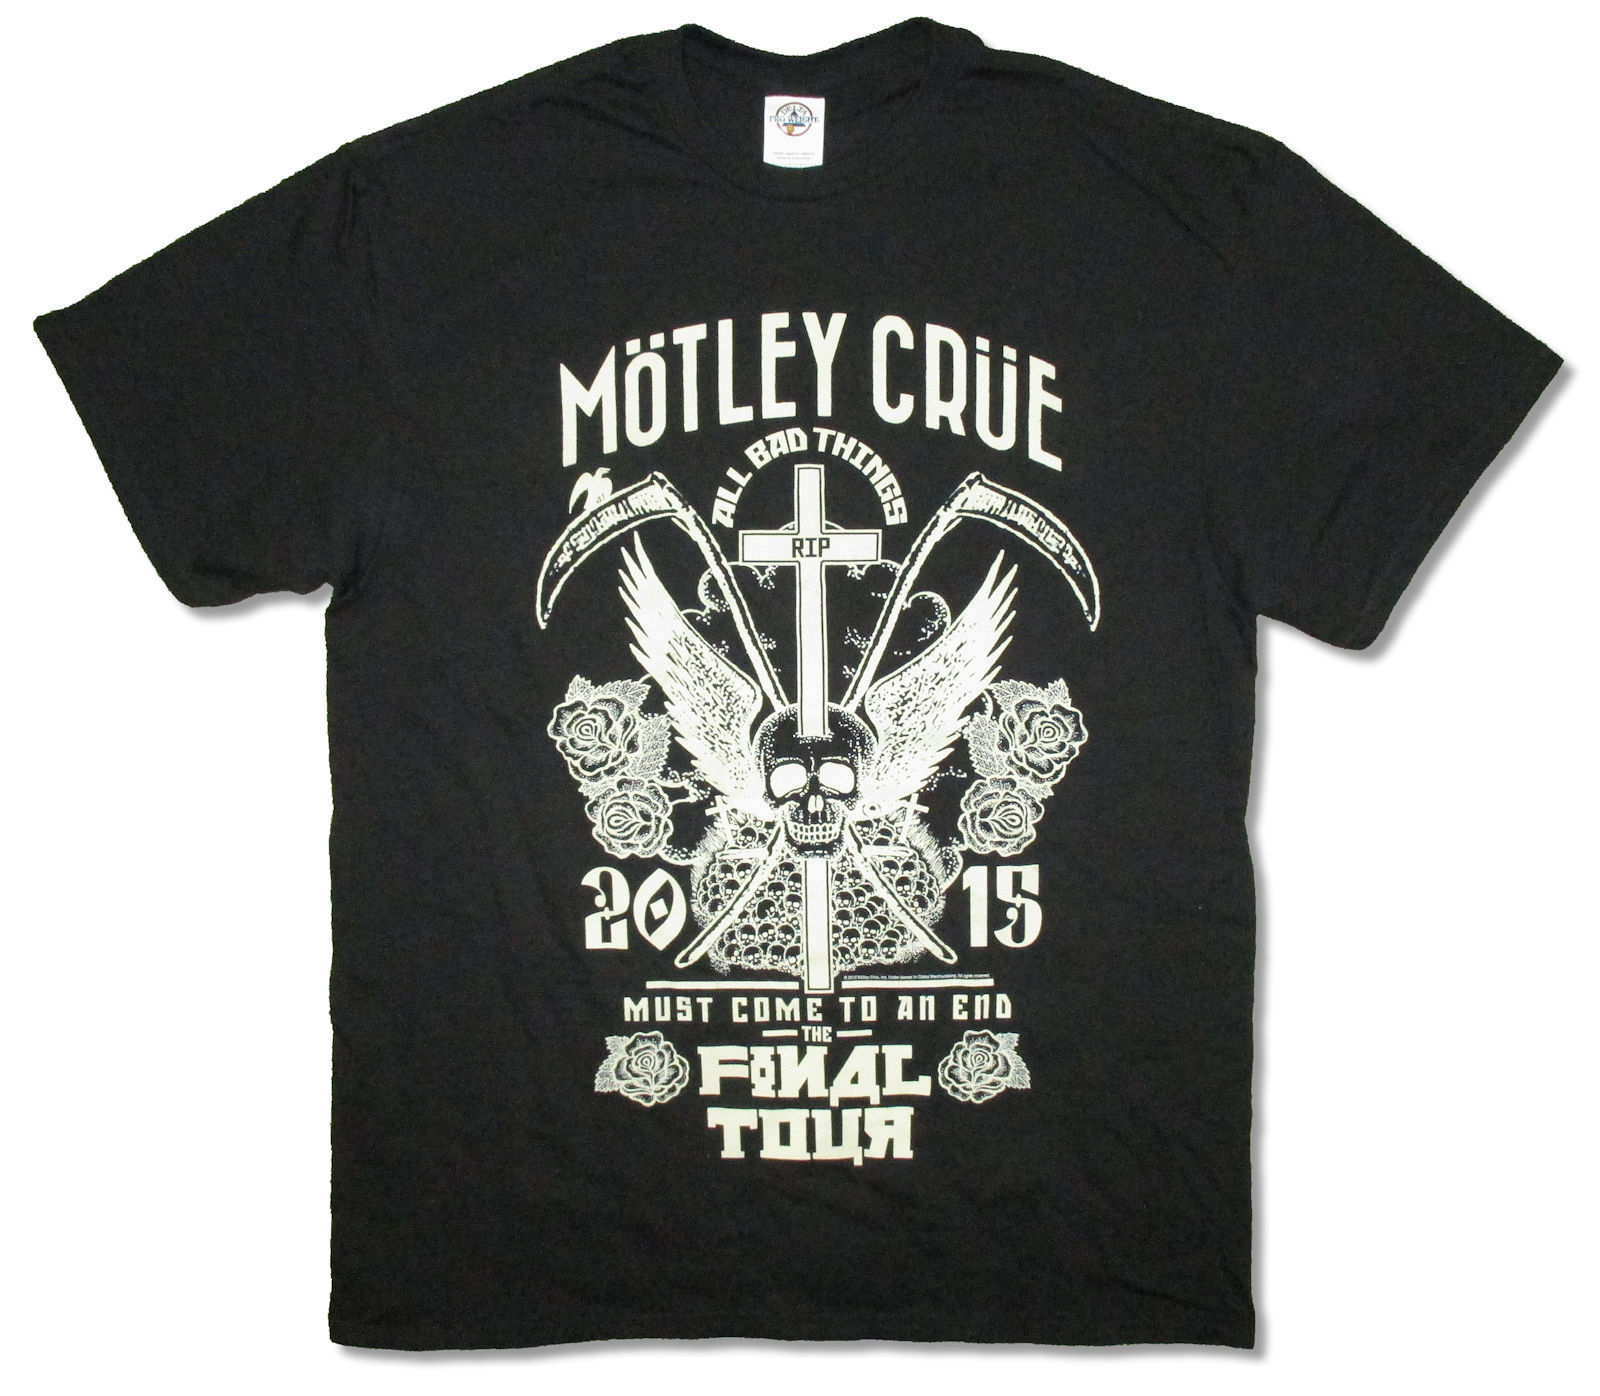 Motley Crue R.I.P. All Bad Things Tour 2015 Black T Shirt New Official Merch